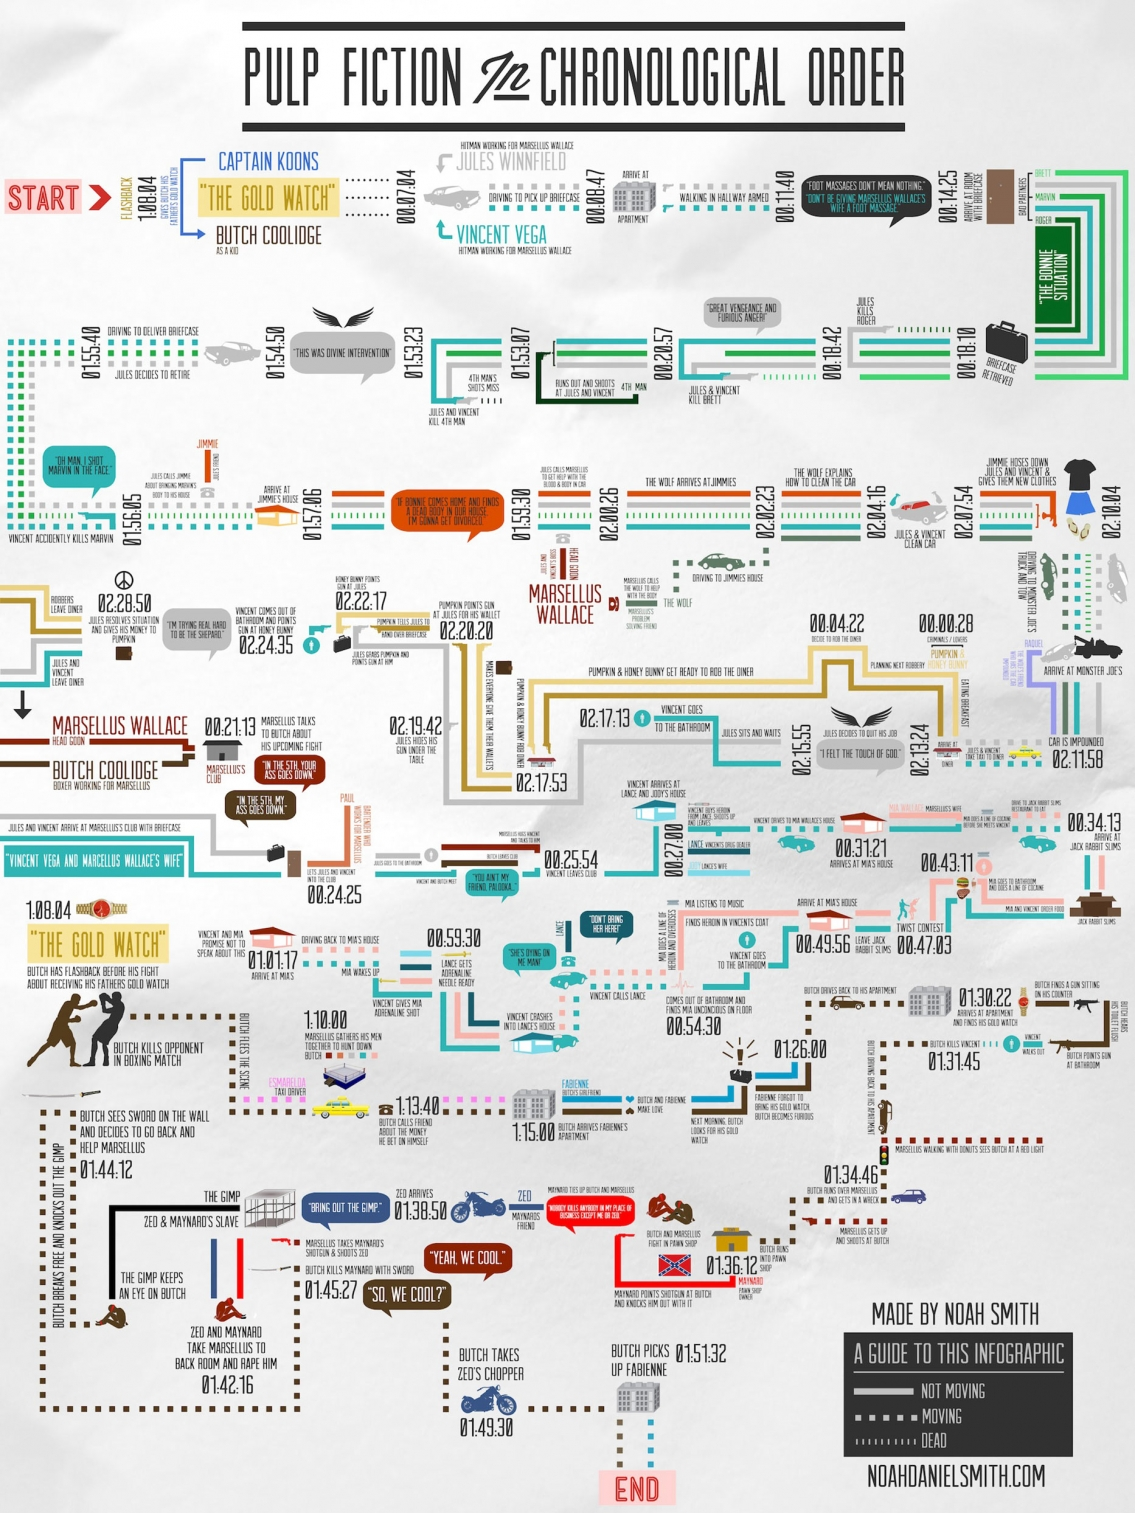 Pulp Fiction in Chronological Order Movie Infographic